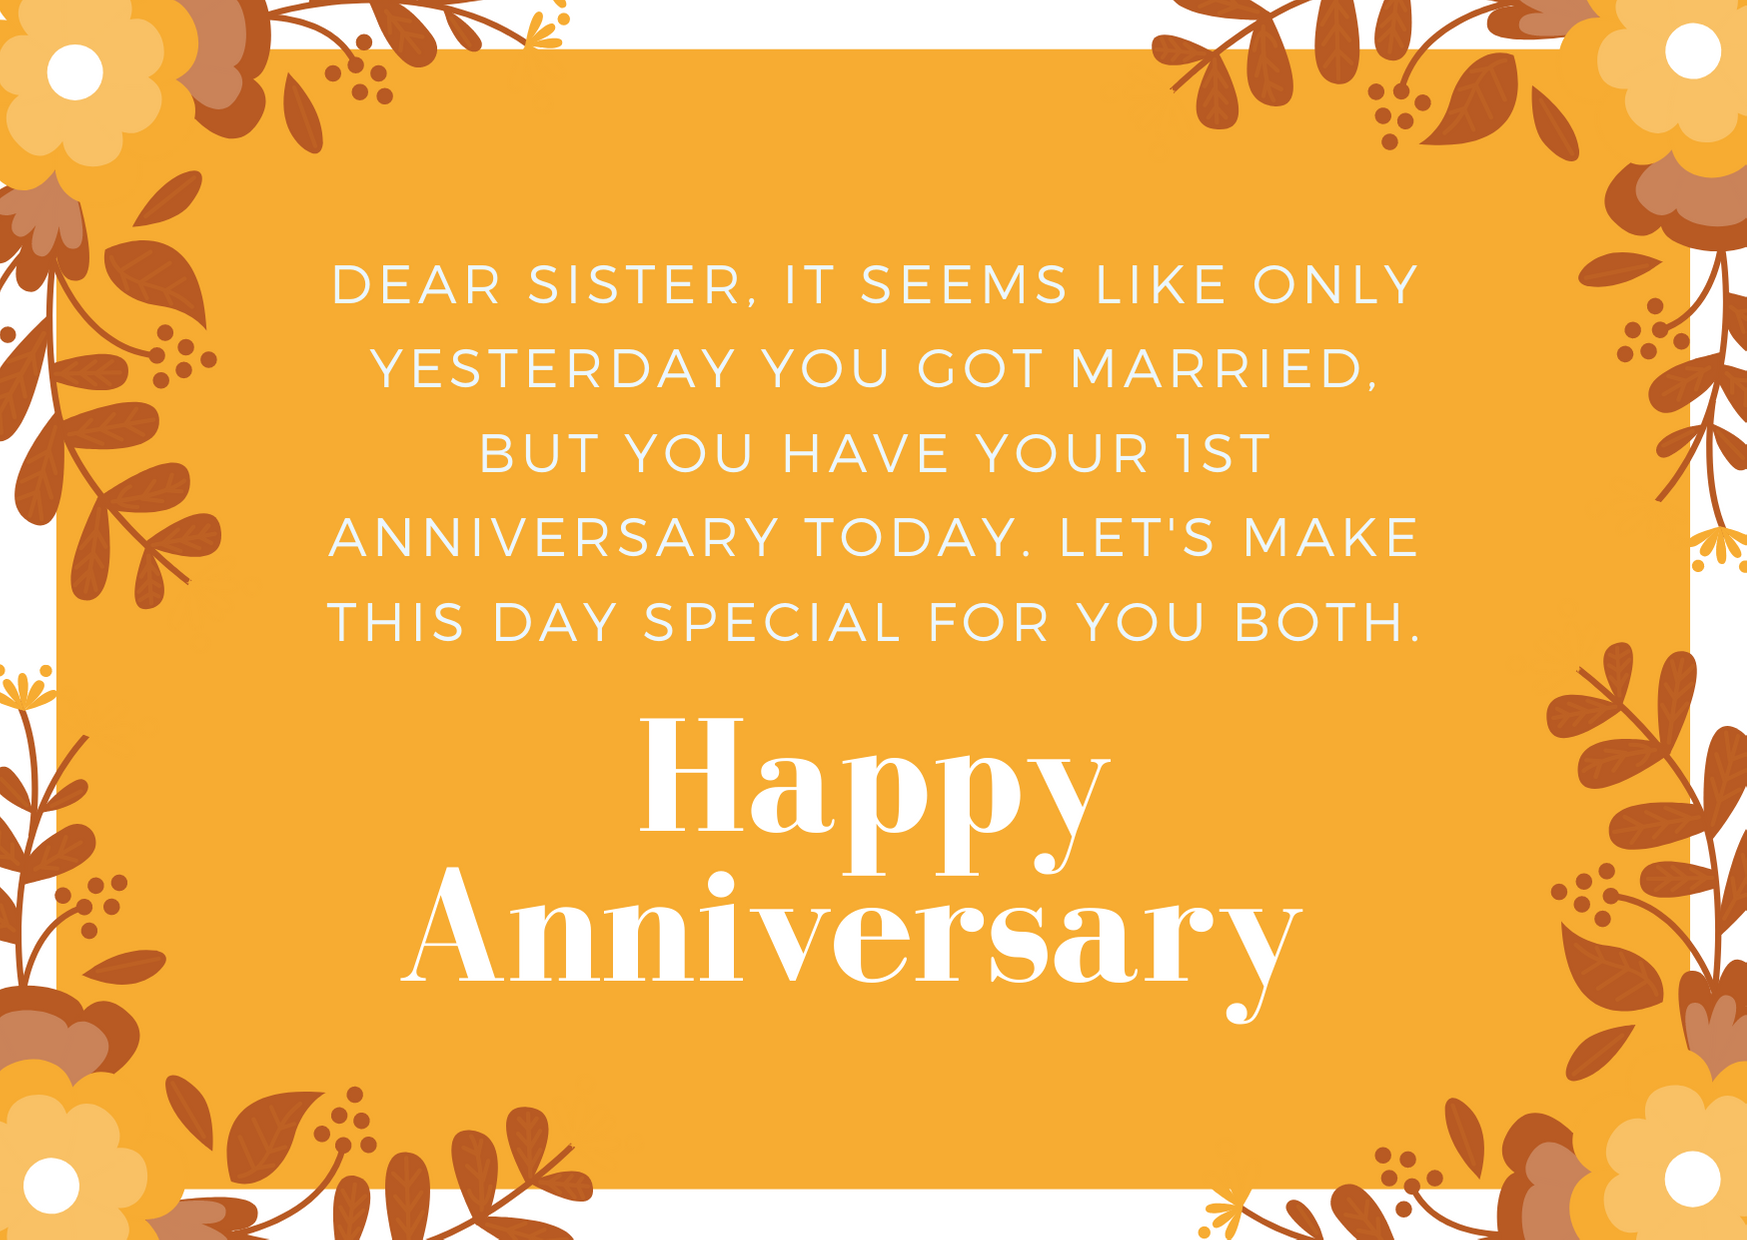 happy anniversary messages to sister